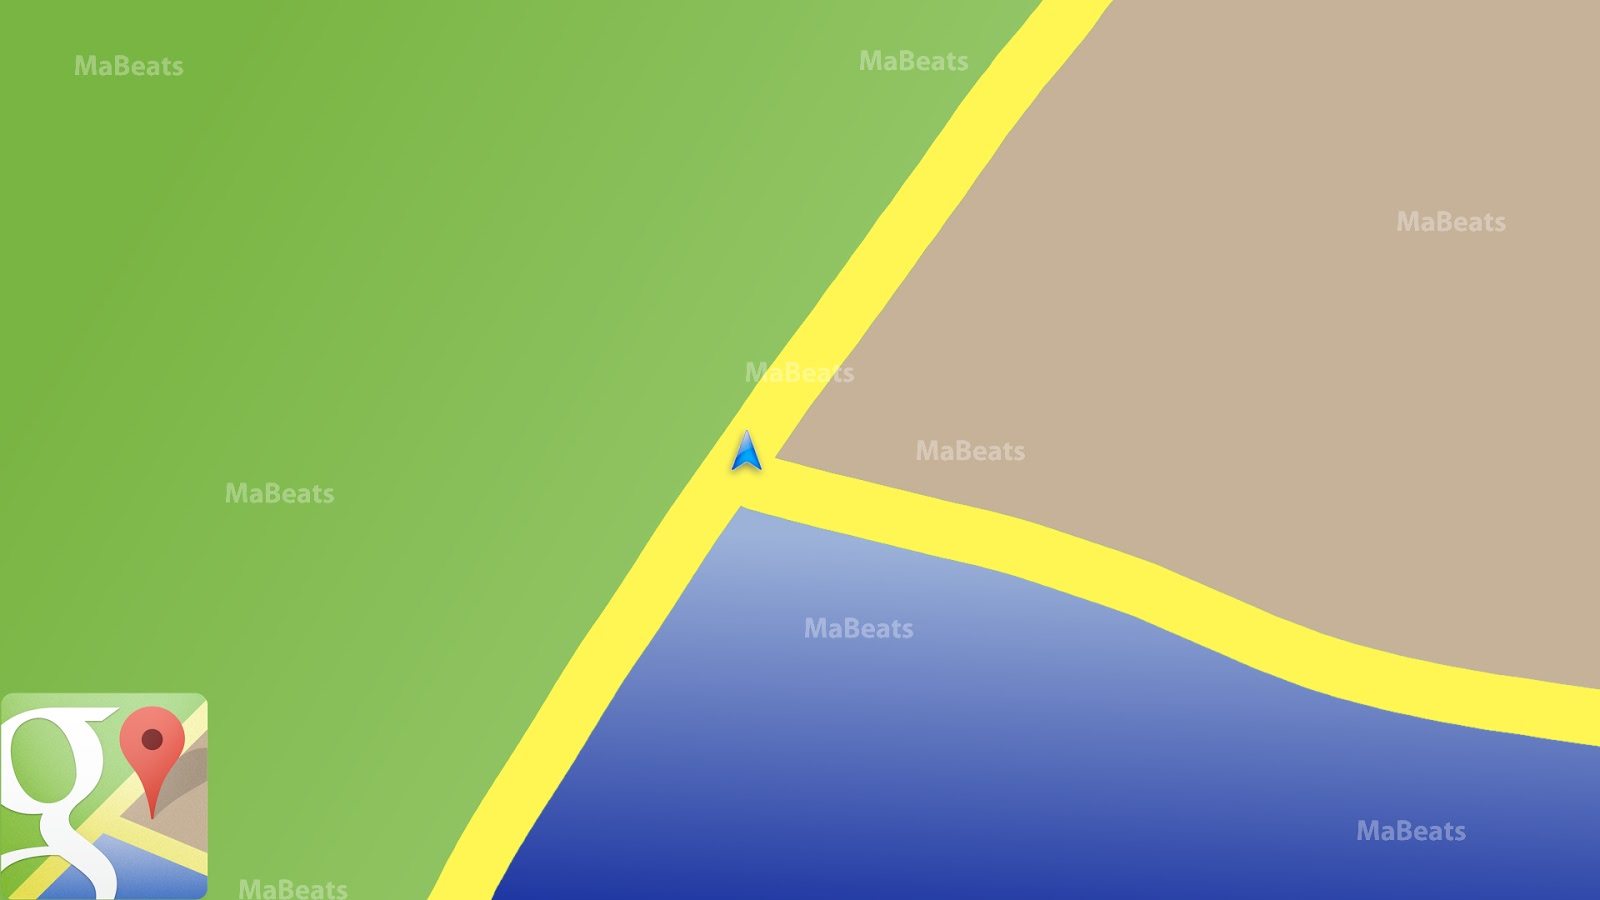 Few things about Google maps